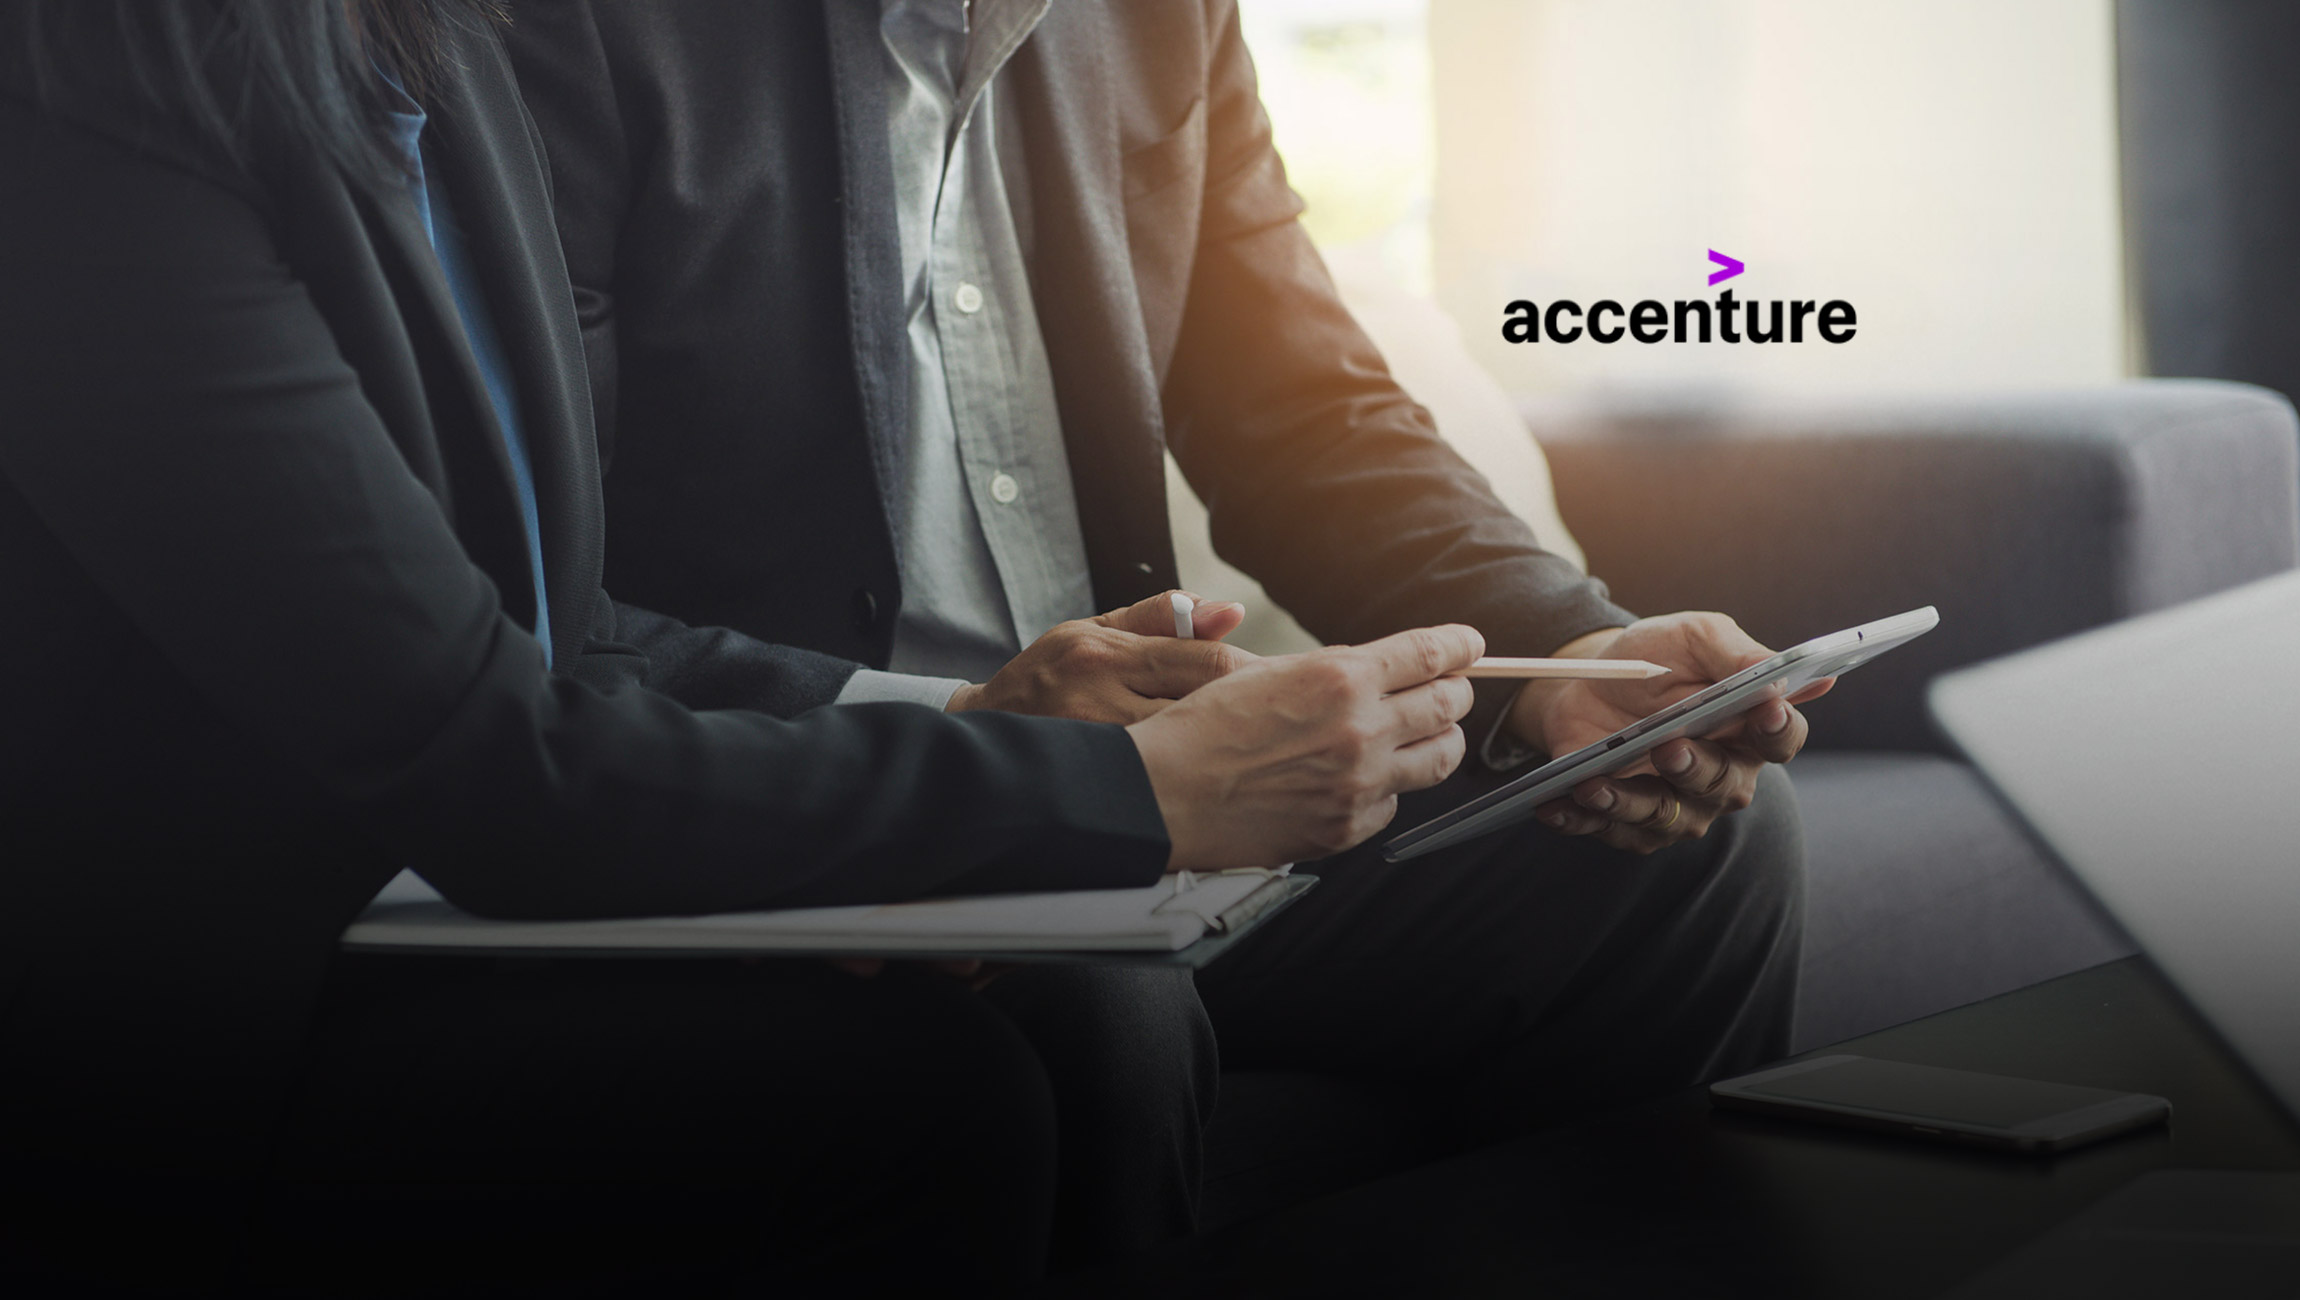 Accenture Together with SAP Takes Bold Steps to Move Clients Further Into the Cloud with Open Industry Solutions